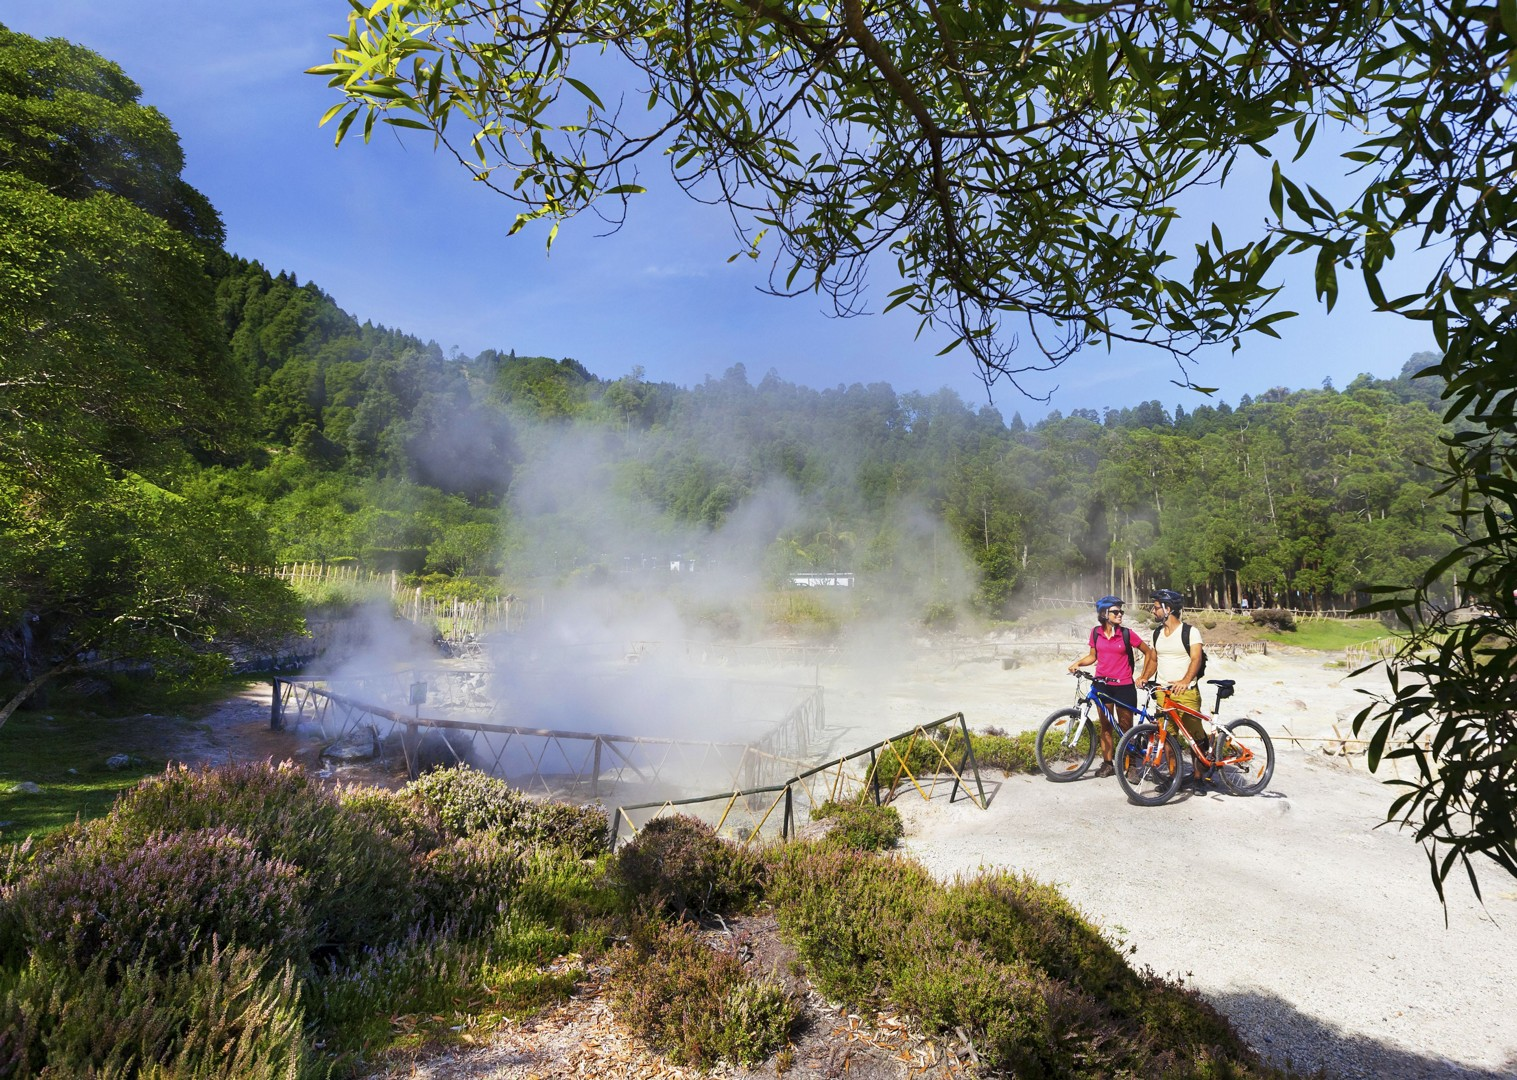 thermal-pools-of-Ferraria-self-guided-cycling holiday-azores.jpg - The Azores - Islands and Volcanoes - Self-Guided Leisure Cycling Holiday - Leisure Cycling